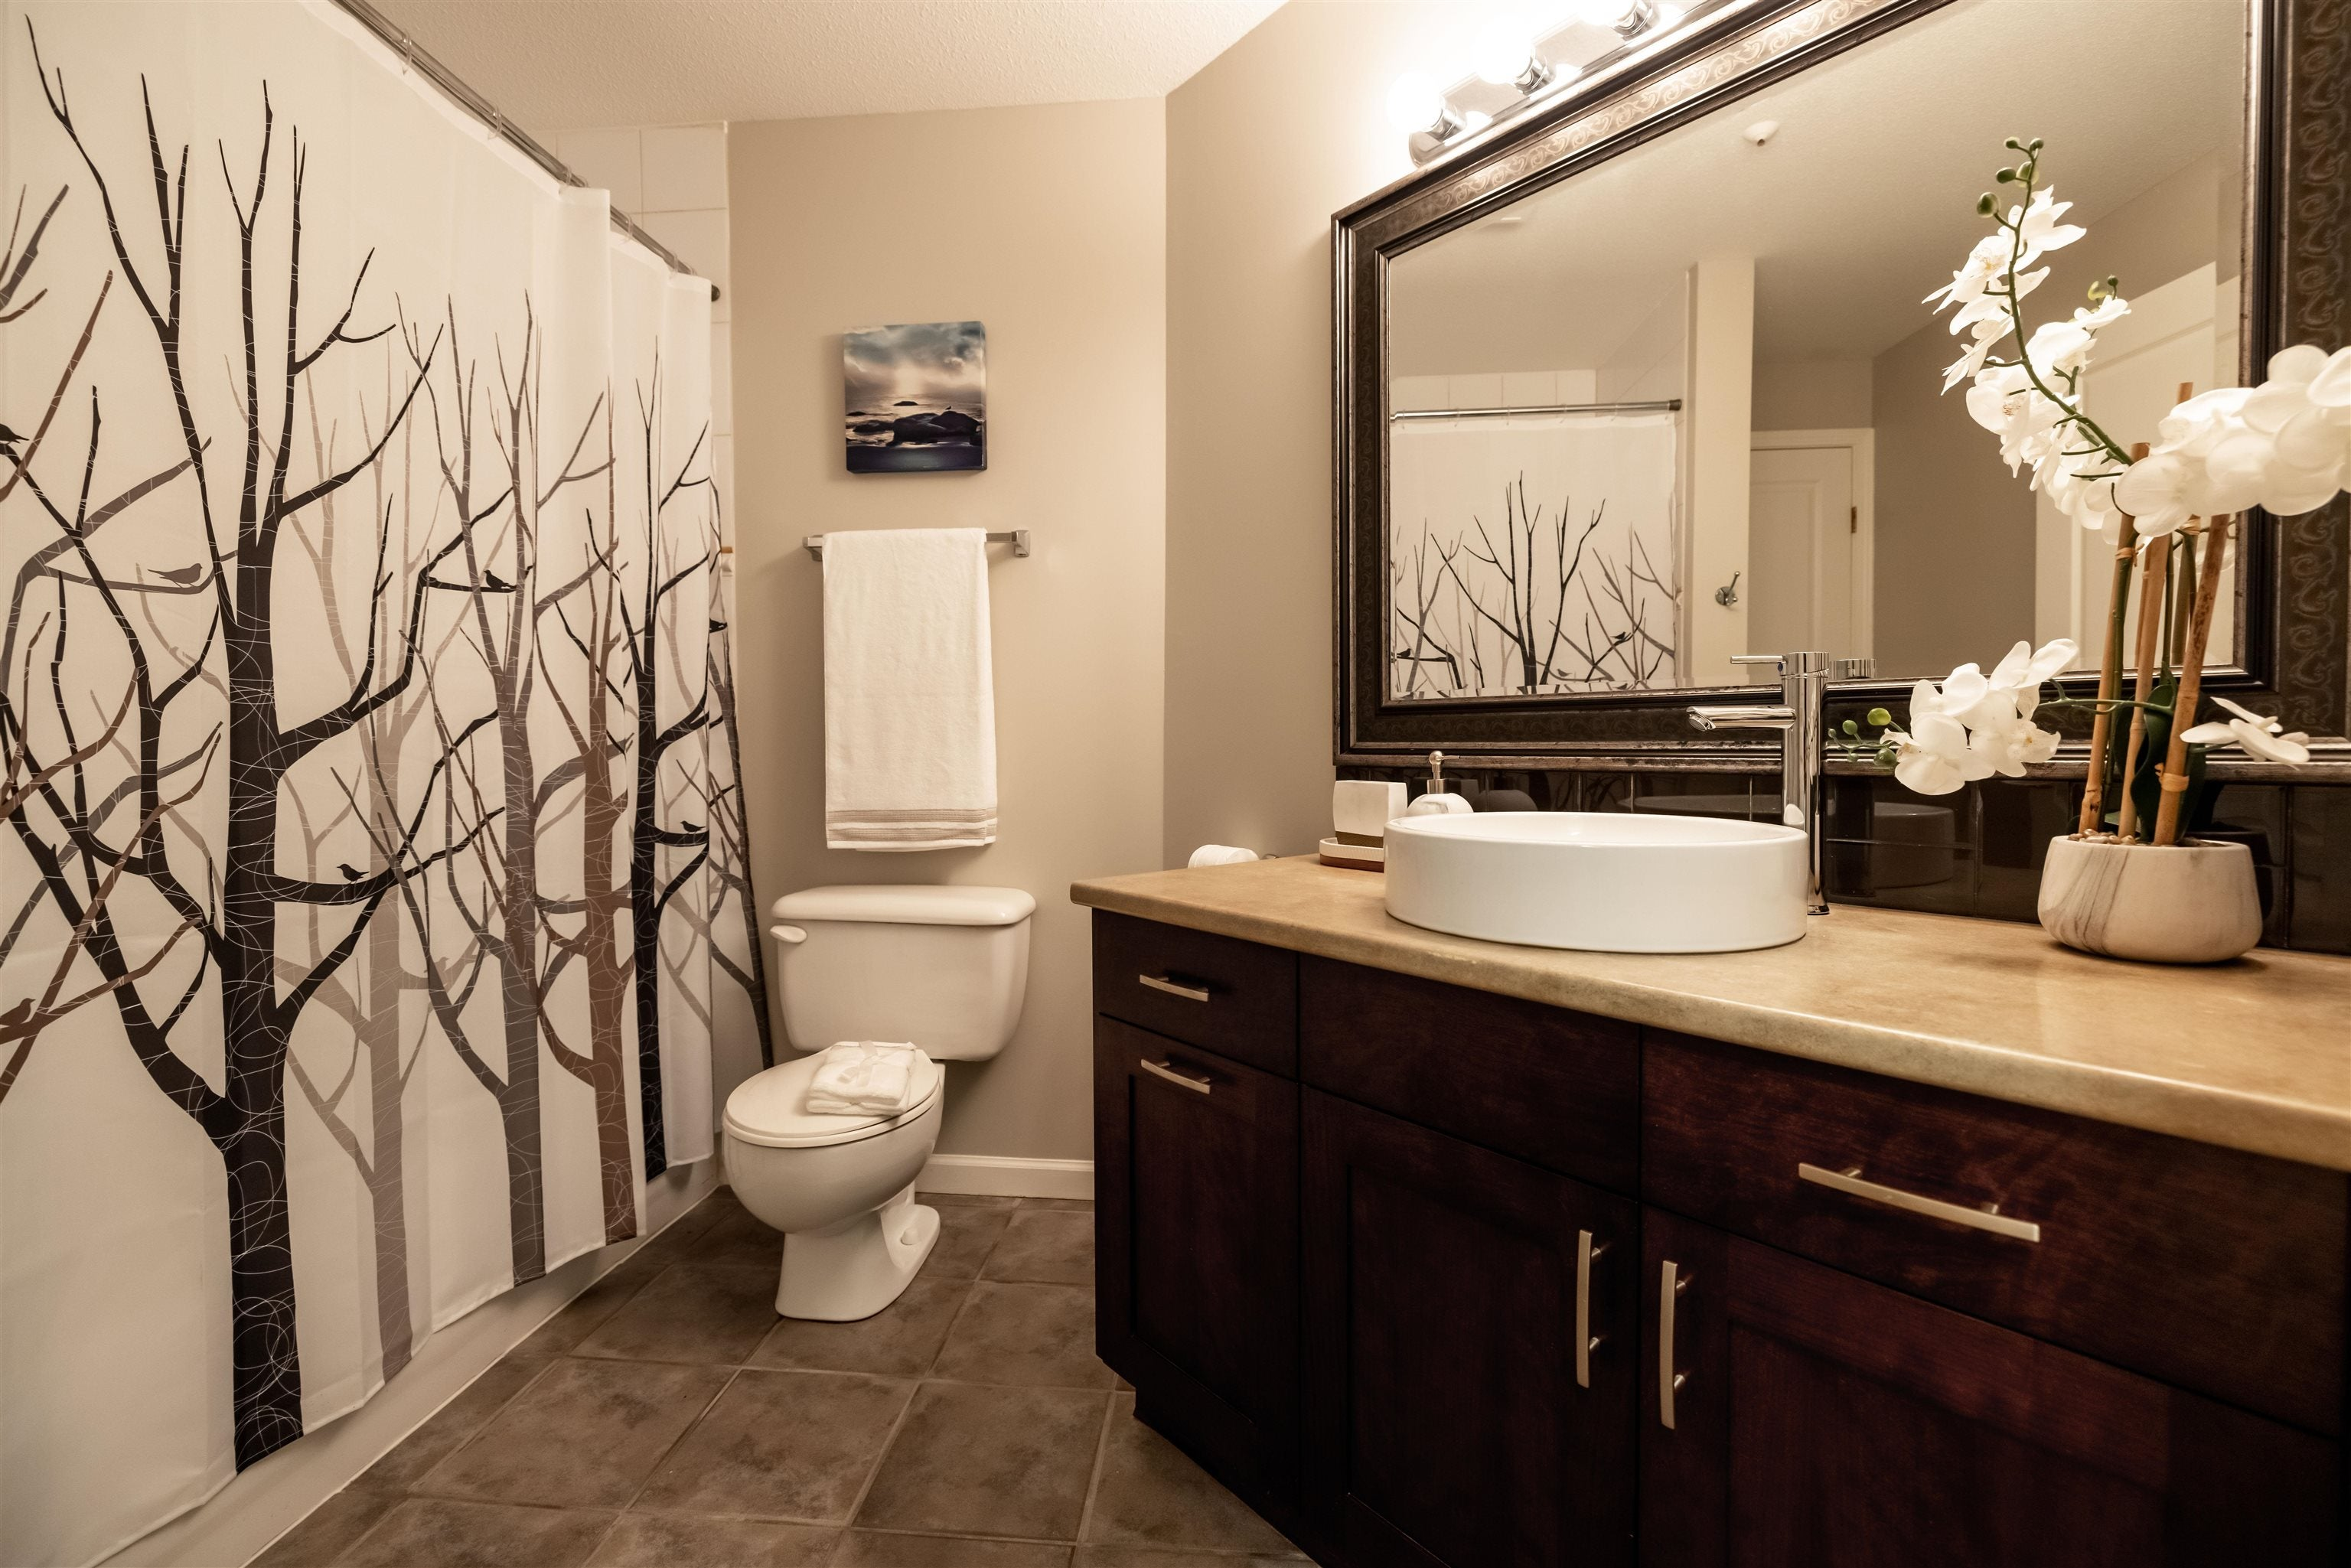 105 8139 121A STREET - Queen Mary Park Surrey Apartment/Condo for sale, 2 Bedrooms (R2623168) - #14